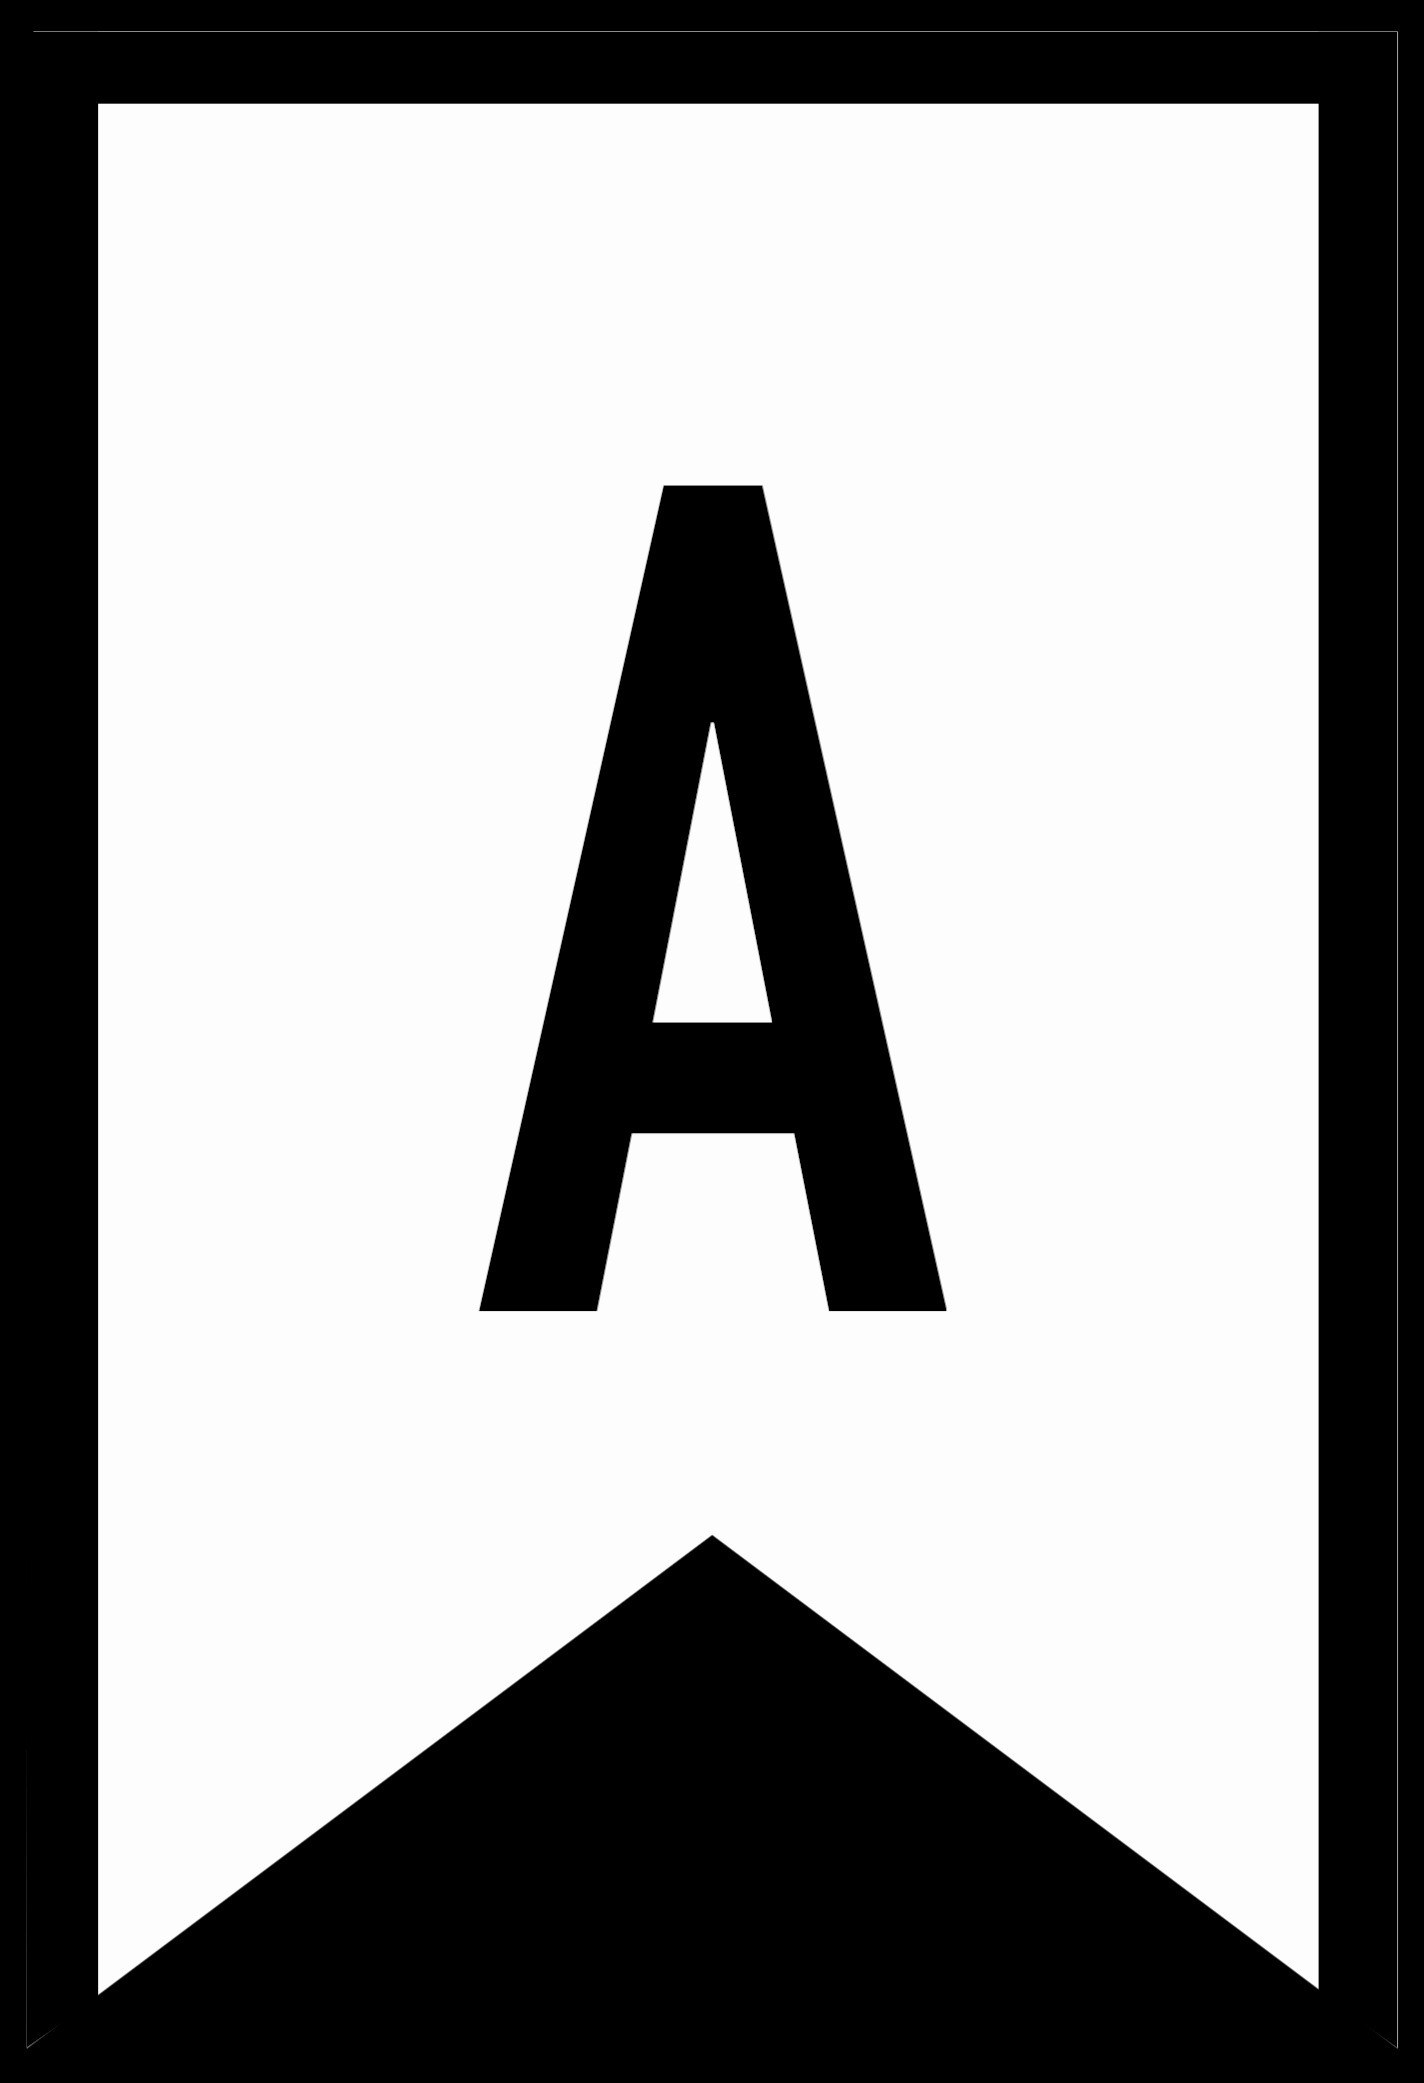 free printable abc letters banner templates